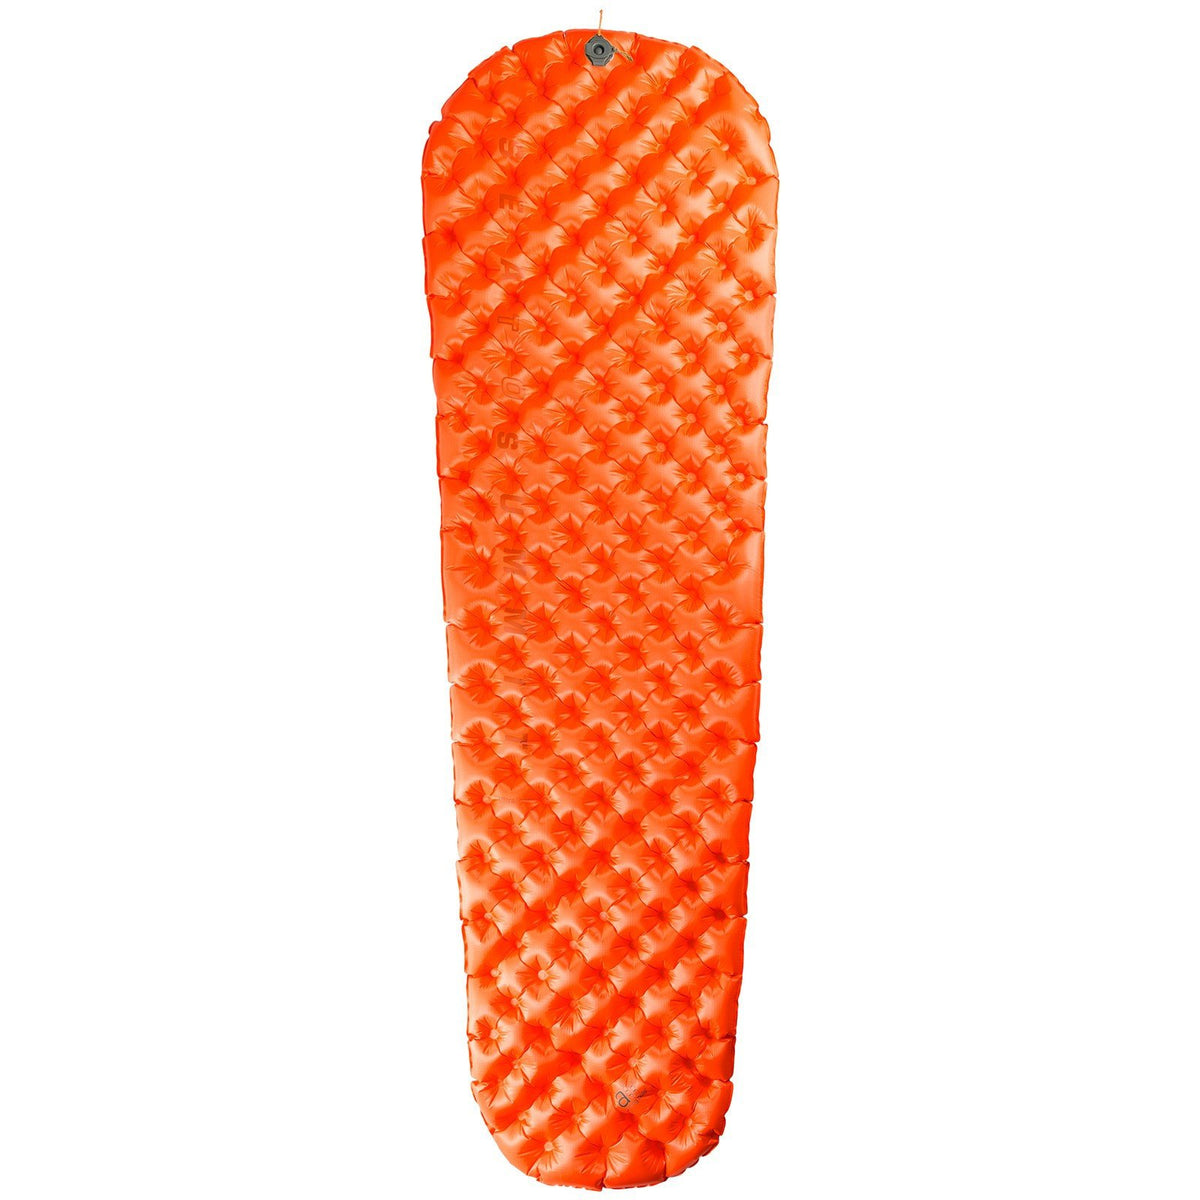 Sea to Summit UltraLight Insulated sleeping mat, shown inflated and laid flat in orange colour